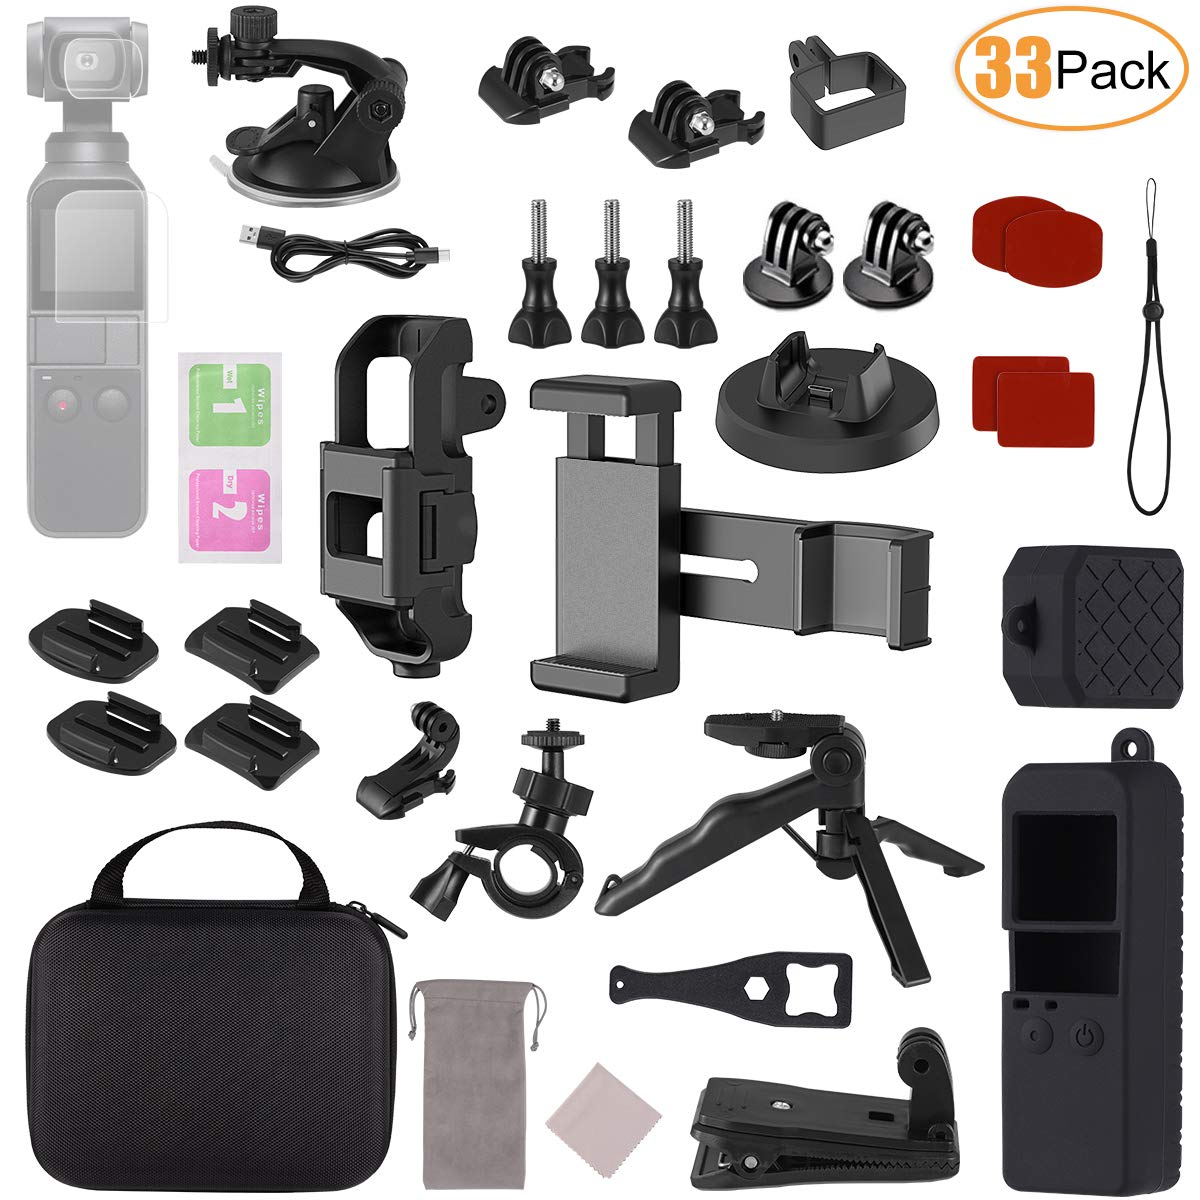 Aotnex Expansion Accessories Kit 33 Pack for DJI Osmo Pocket Handheld Camera Including Osmo Pocket Phone Clip Mount and Tripod Holder with Travel Case for Easy Organization by Aotnex